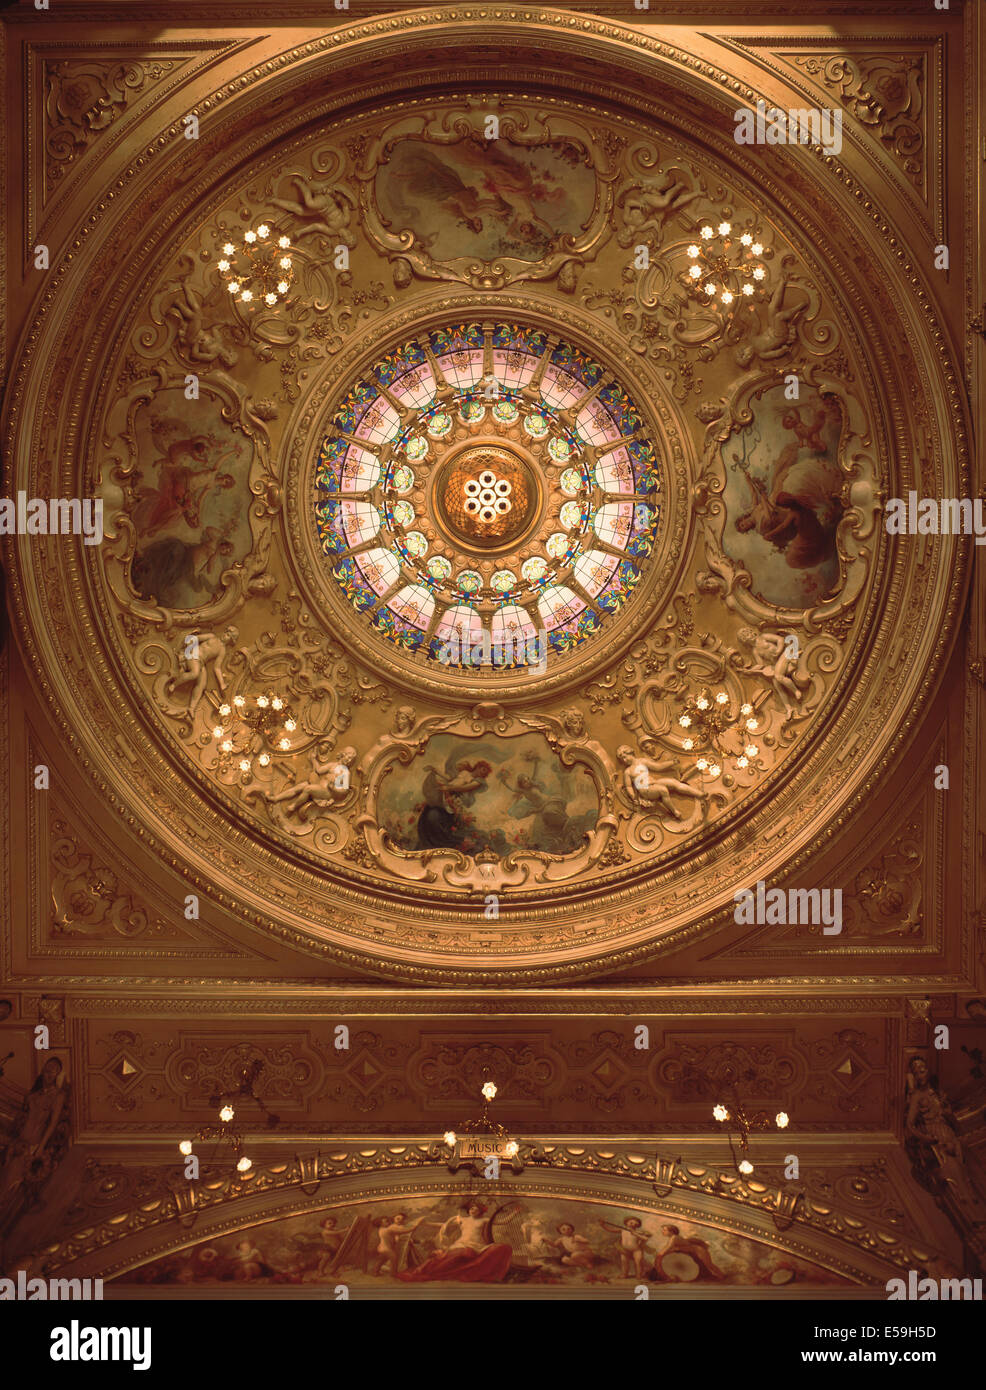 The domed ceiling of the Gaiety Theatre designed by Architect Frank Matcham in Douglas in the Isle of Man. - Stock Image